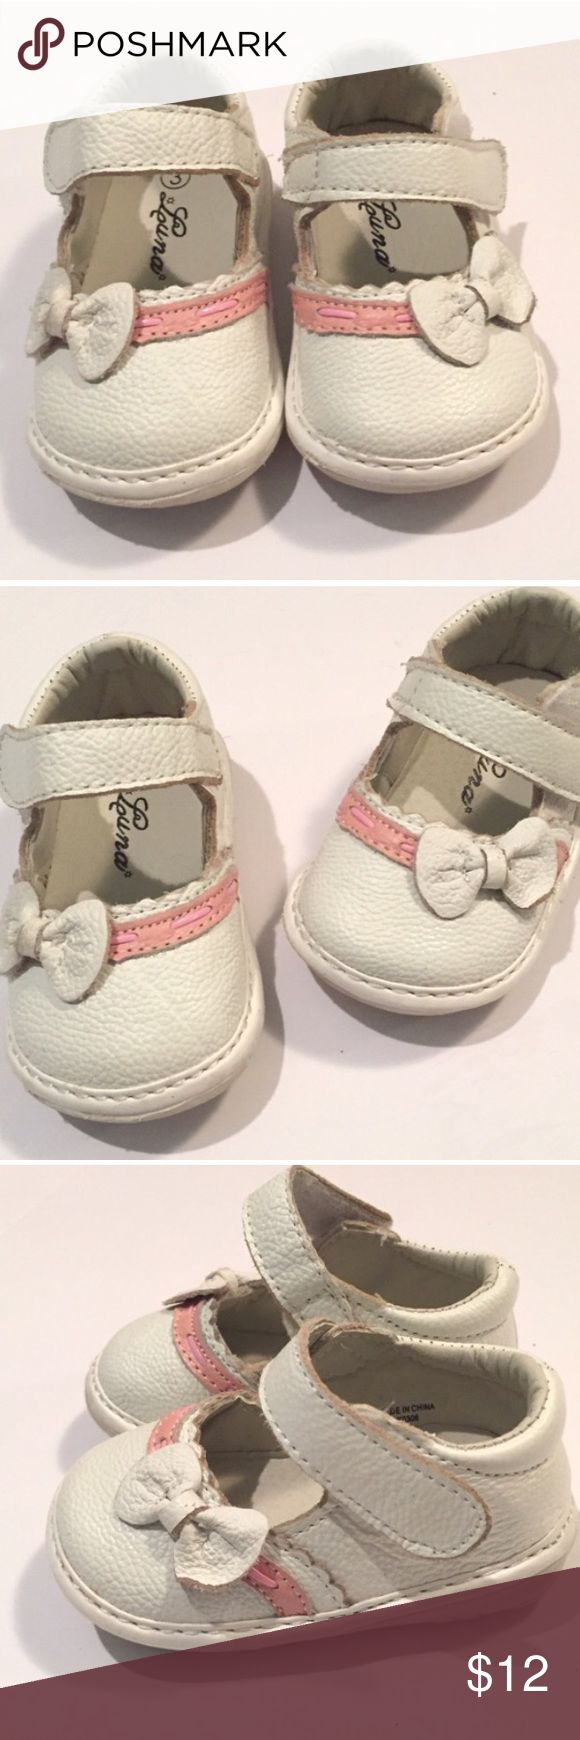 Size 3 Luna shoes White shoes with pink line and small bow Luna kids  Shoes